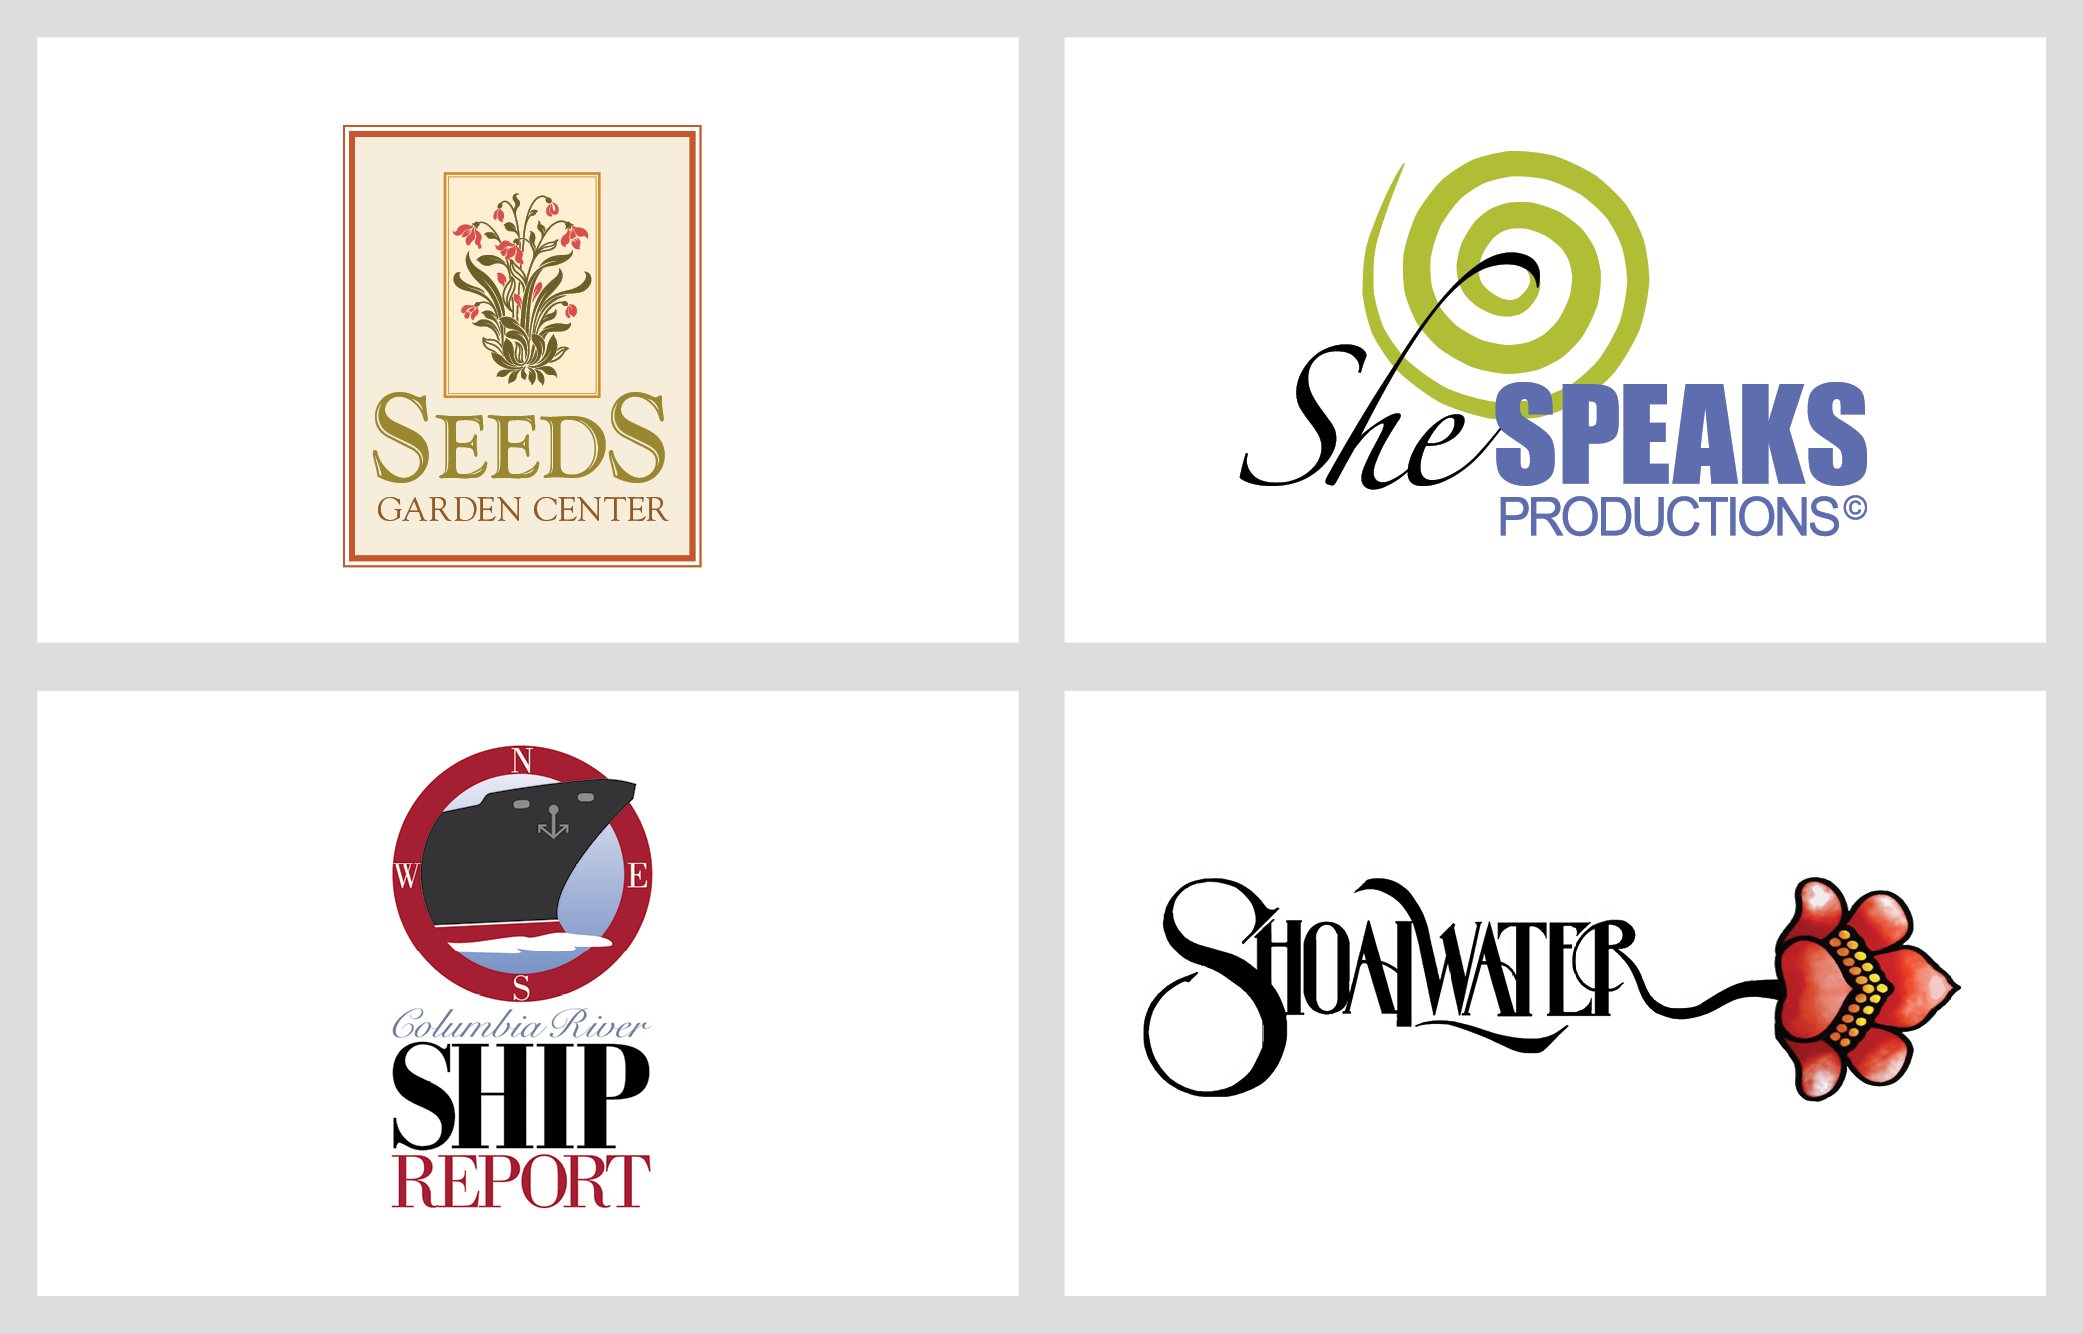 seeds garden center, she speaks productions, ship report, shoalwater logo examples